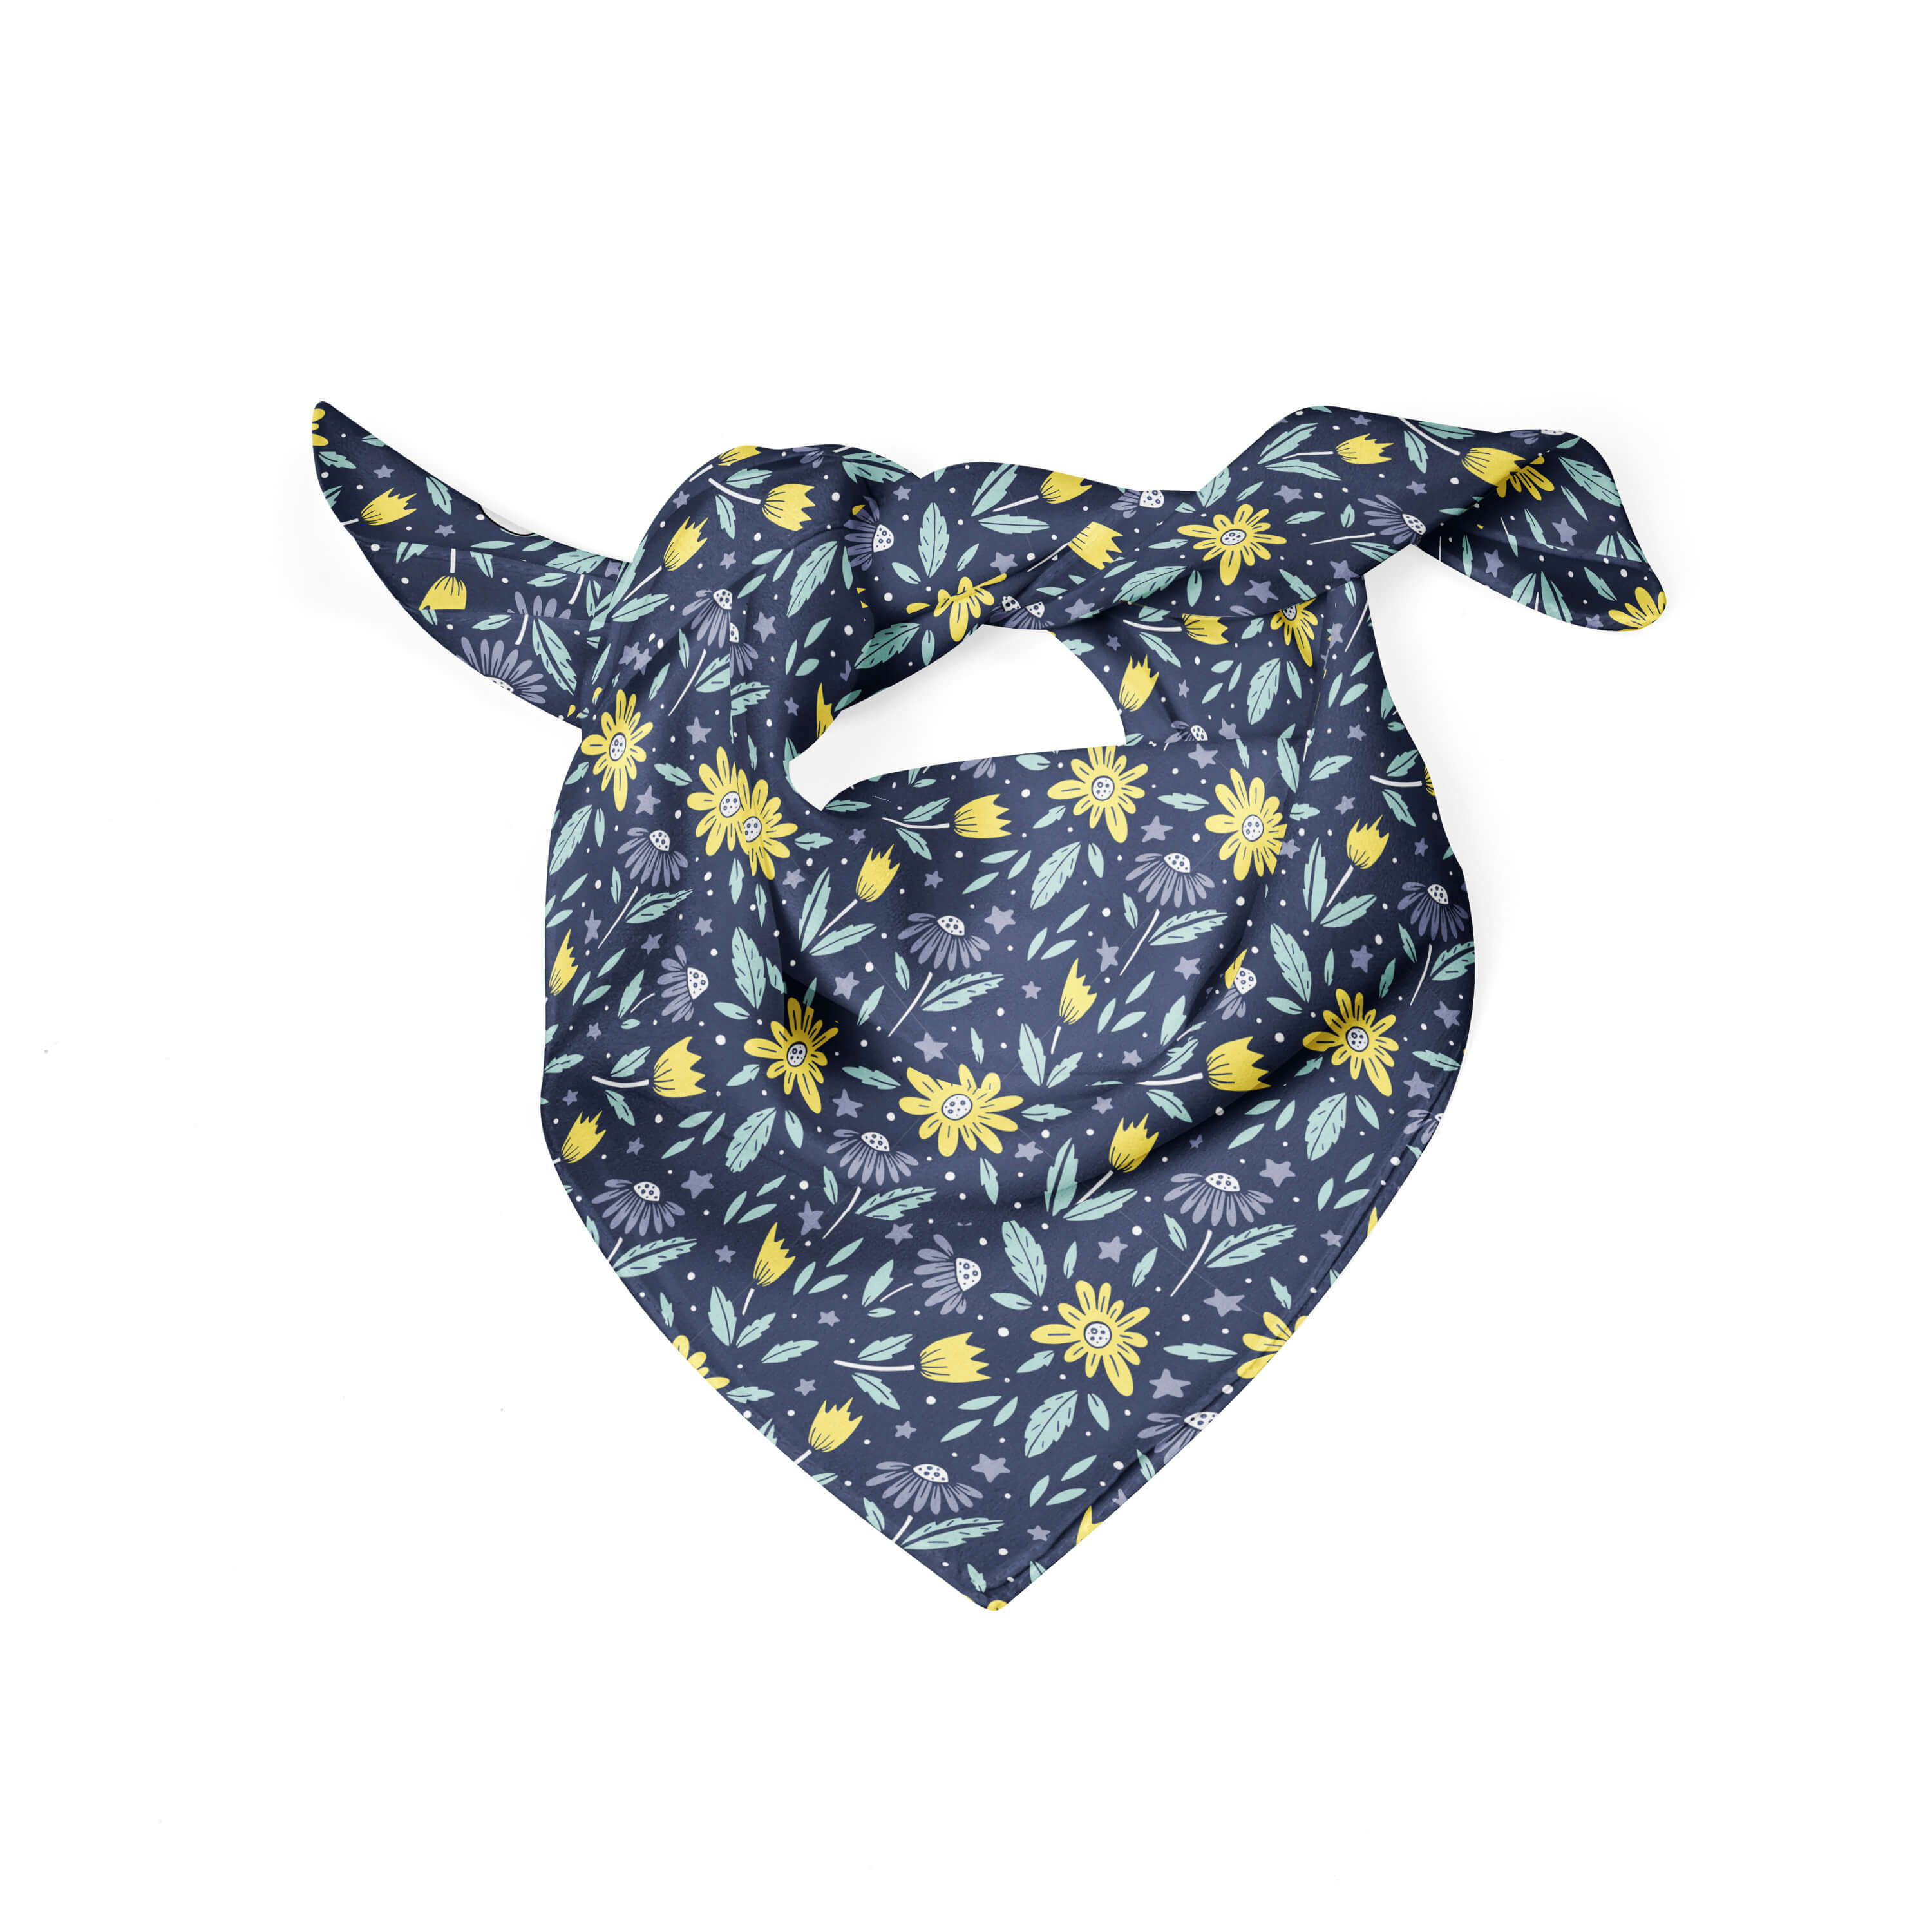 Banana Bandanas Moonflower dog bandana folded photo